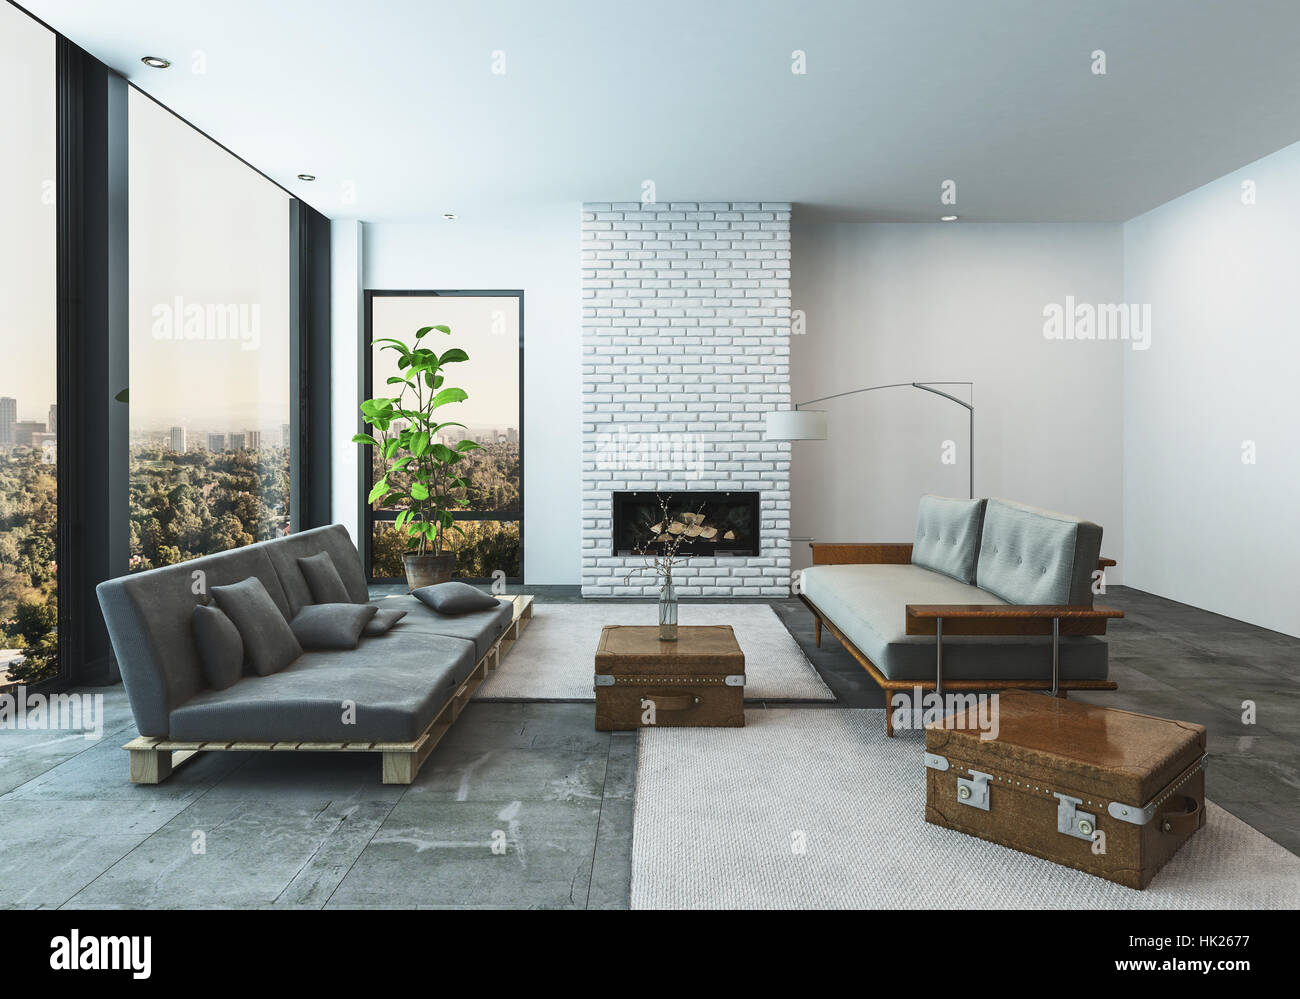 Stylish Modern Living Room In A Condo Or Penthouse Apartment With